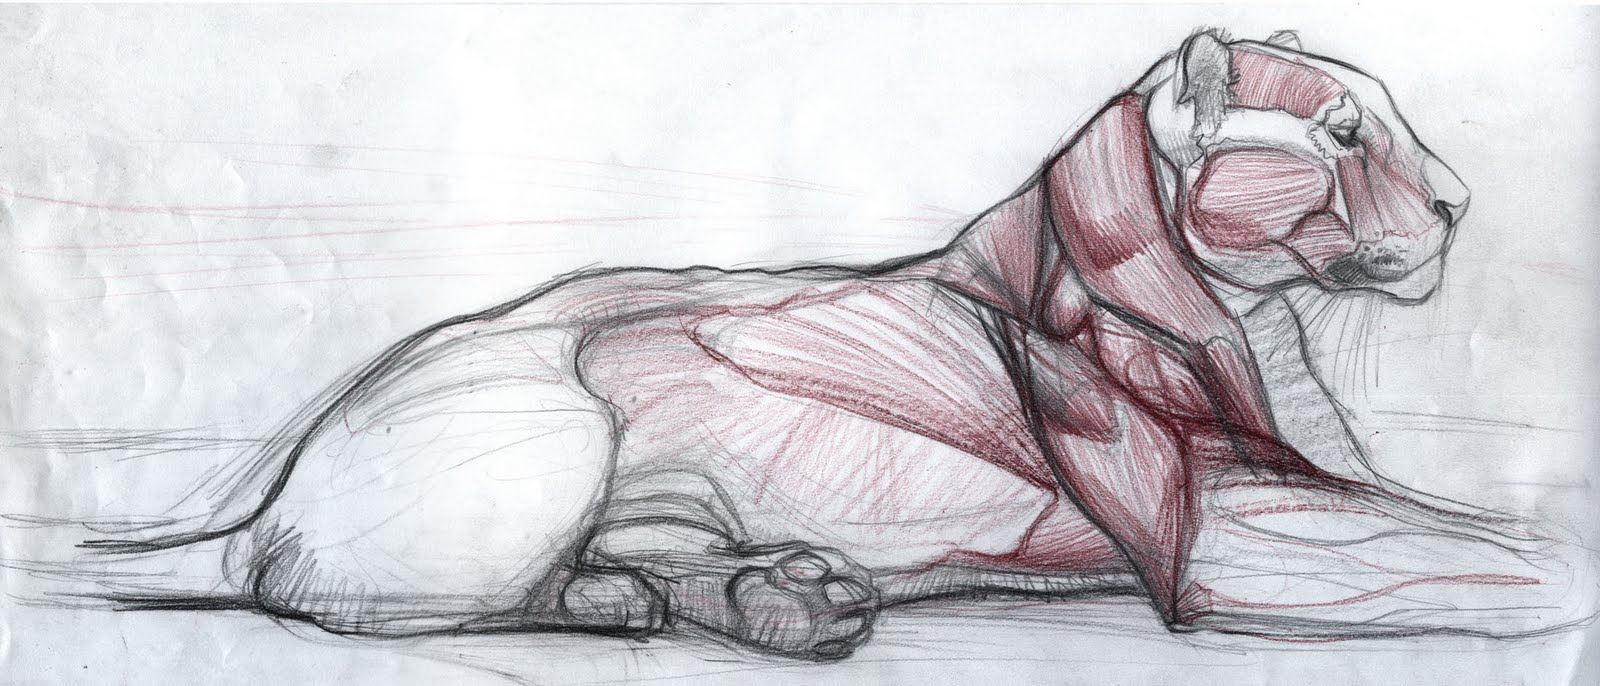 Tiger Muscle Anatomy Image collections - human body anatomy